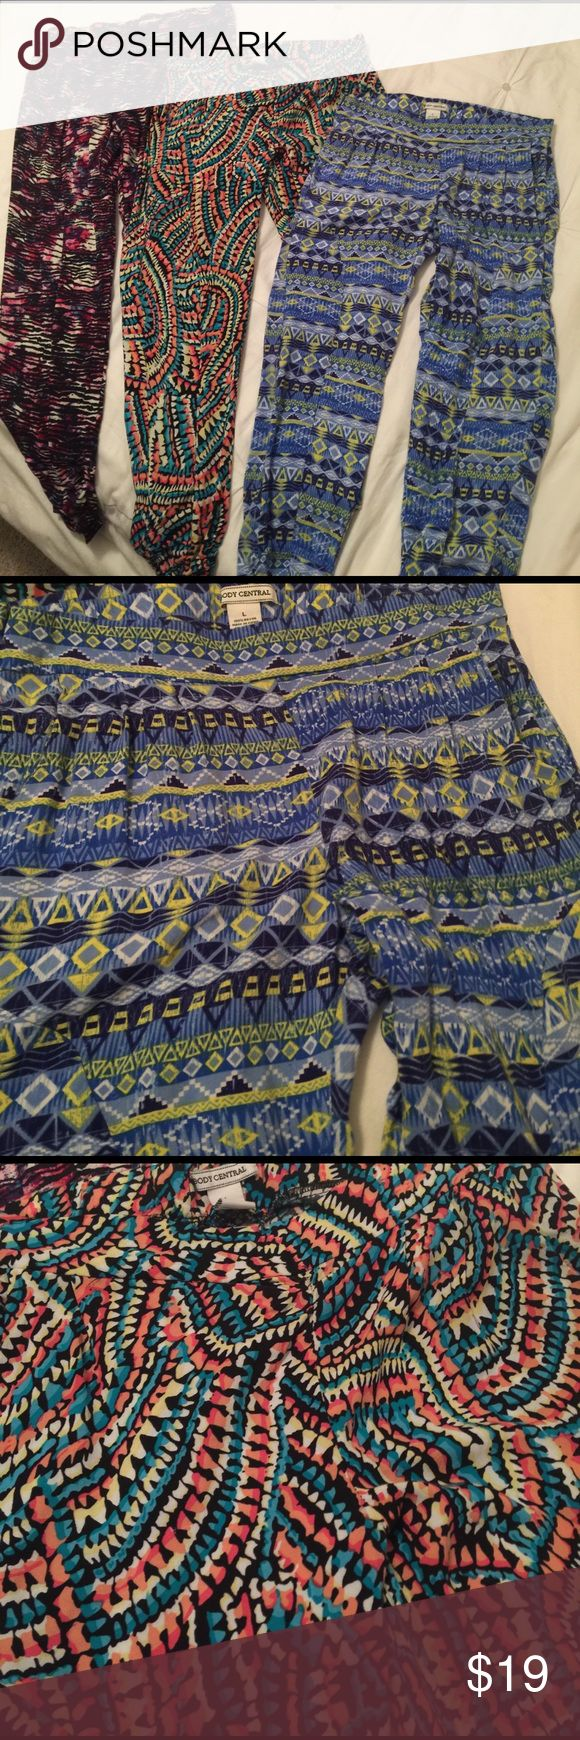 Body Central multi color pattern pants sz: L Body Central 3 multi color pattern pants sz: L loose fitting, with elastic waste band and scrunch bottom on legs can wear as capris too. All 3 for the price of 1. Never worn. Make an offer ❤ Body Central Pants Ankle & Cropped